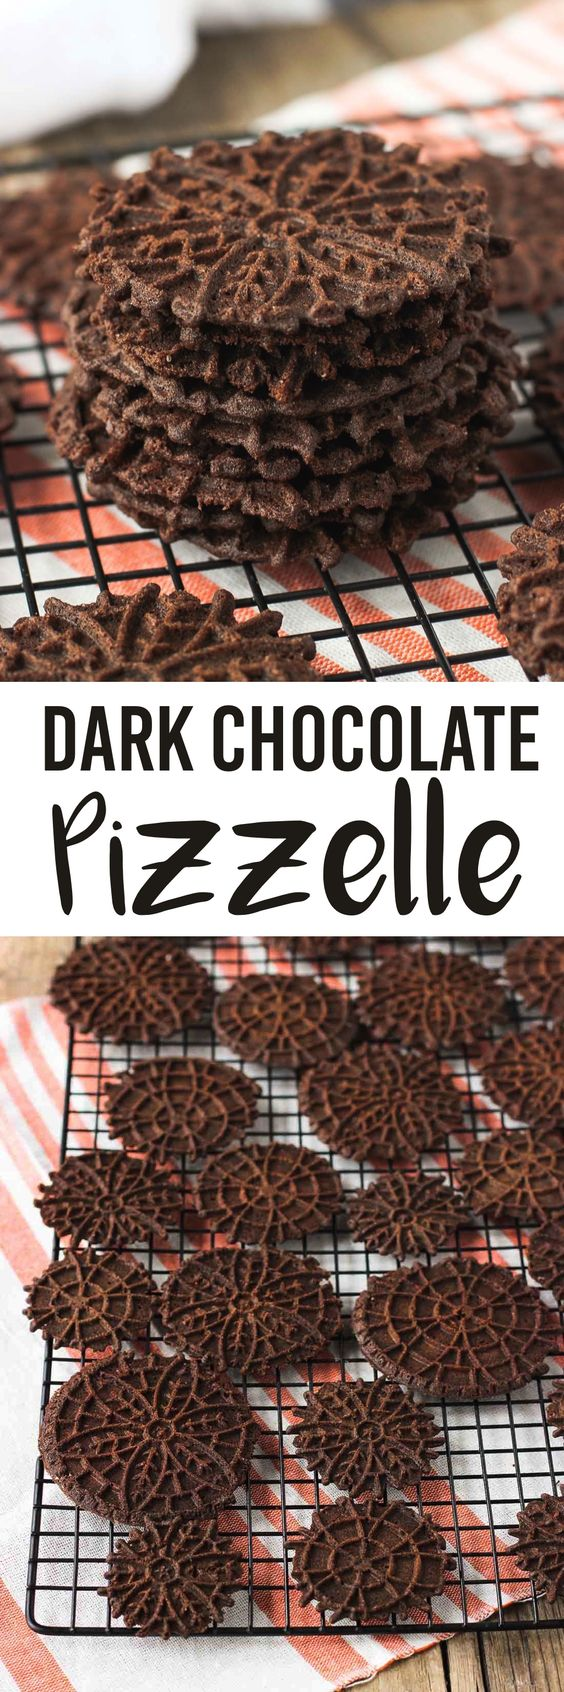 Dark chocolate pizzelle - a fun take on traditional Italian wafer cookies. They're great holiday cookies or easy to turn into cannoli shells or sandwich cookies. mysequinedlife.com